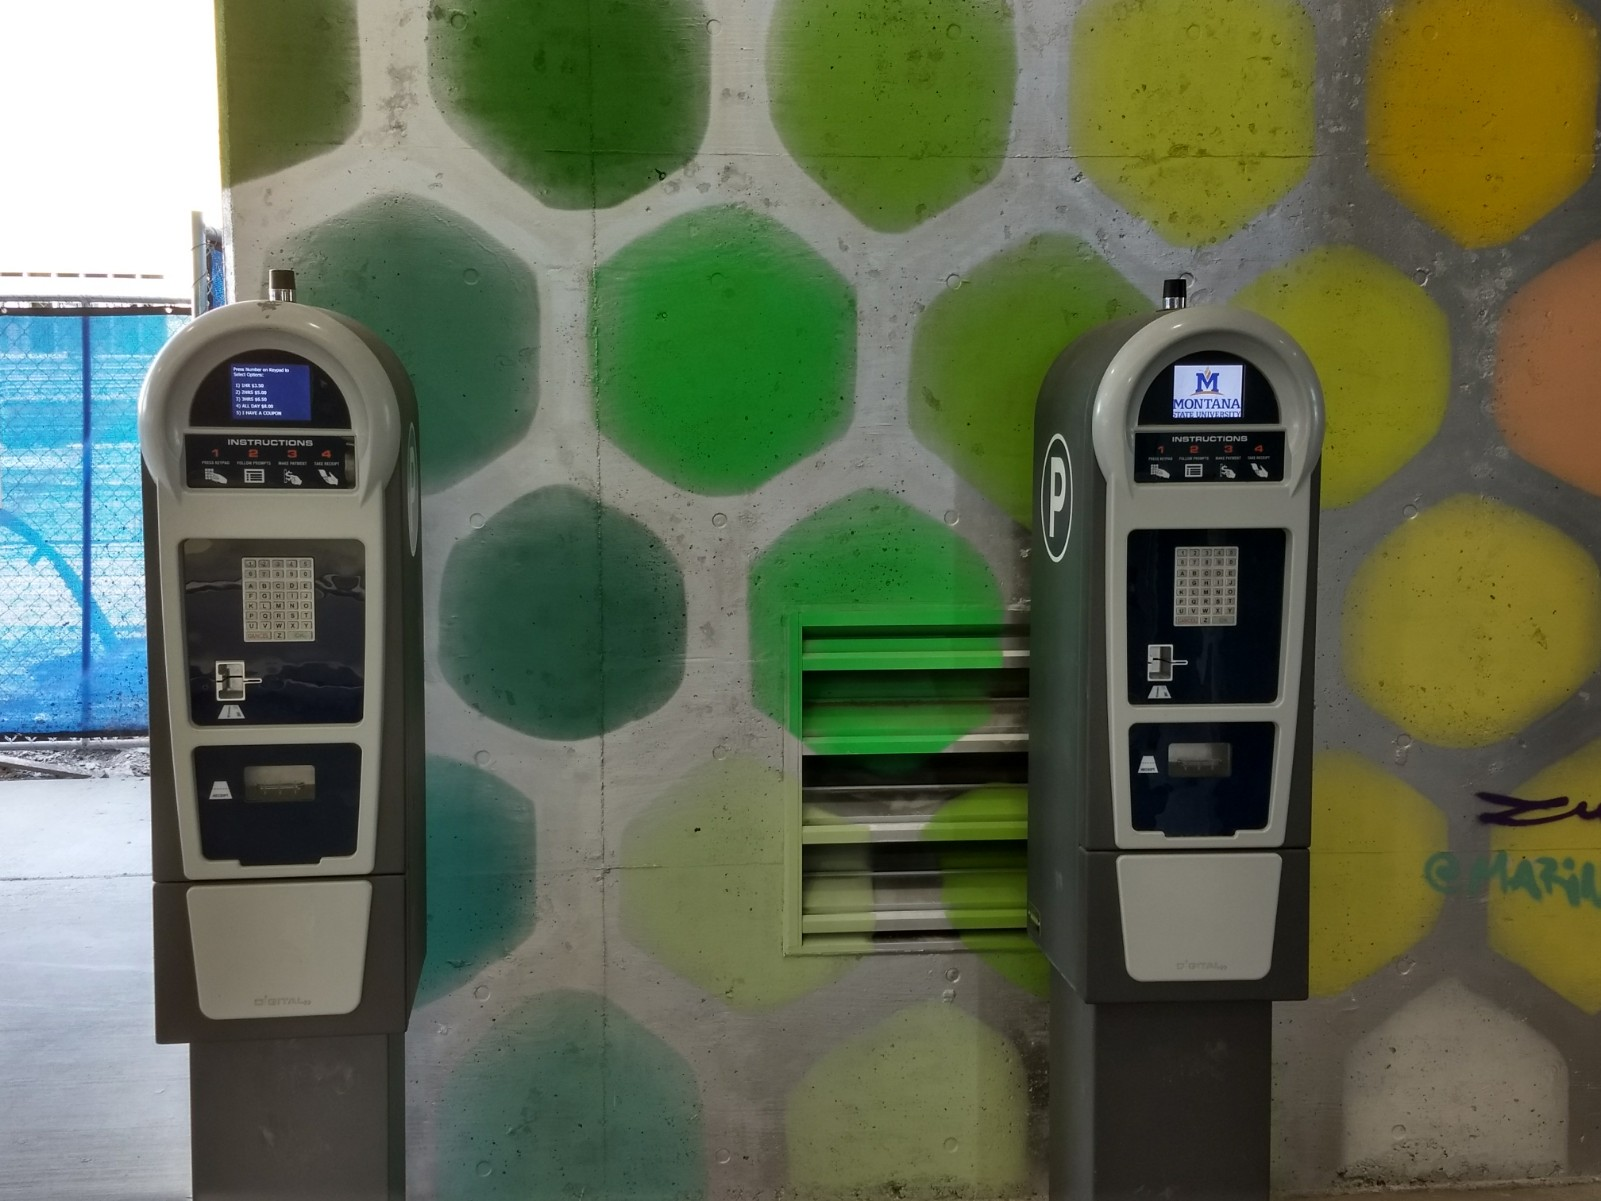 Pay Stations